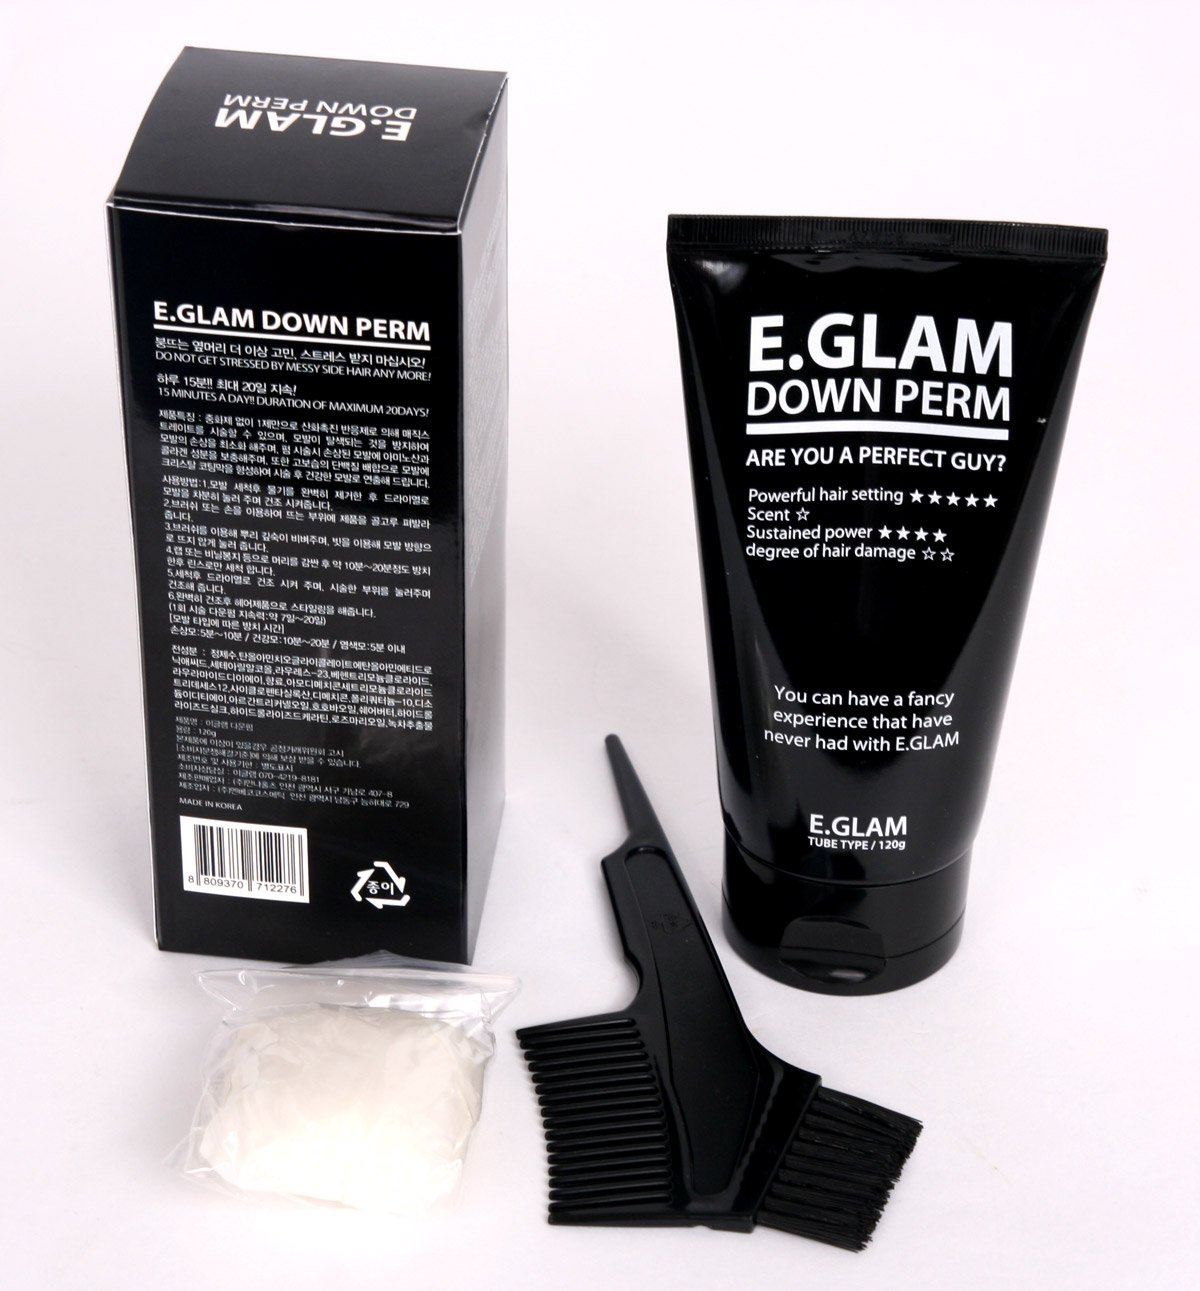 Undo straight perm - Amazon Com E Glam Down Perm For Men Speedy Easy Magic Straight Perm Home Kit 120ml Beauty